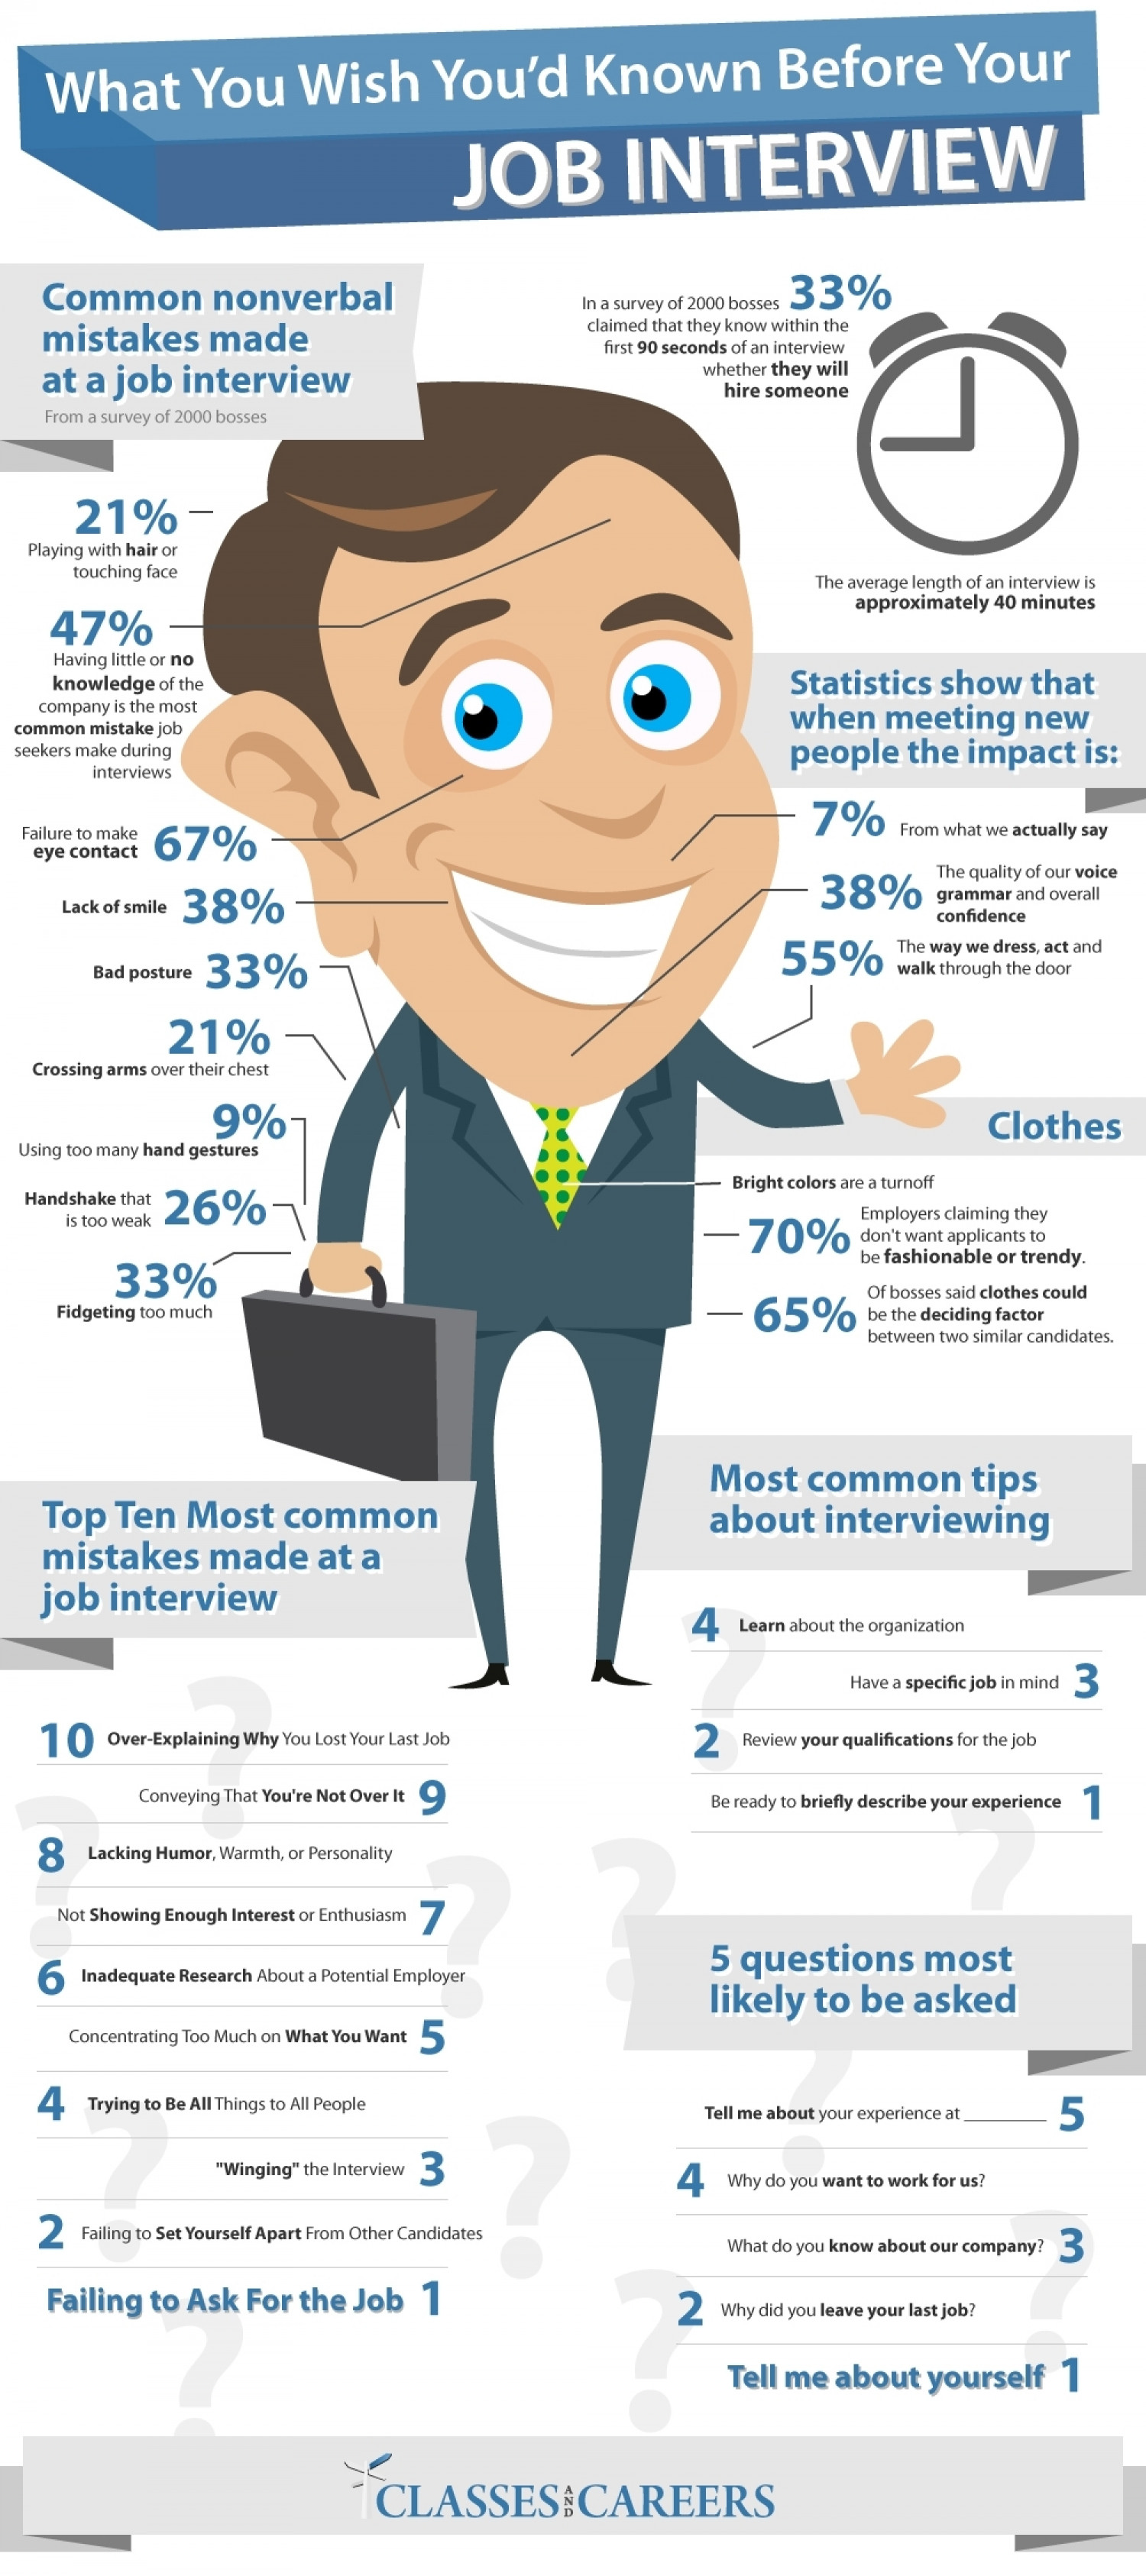 What You Wish Youu0027d Known Before Your Job Interview Infographic  Job Interview Tips